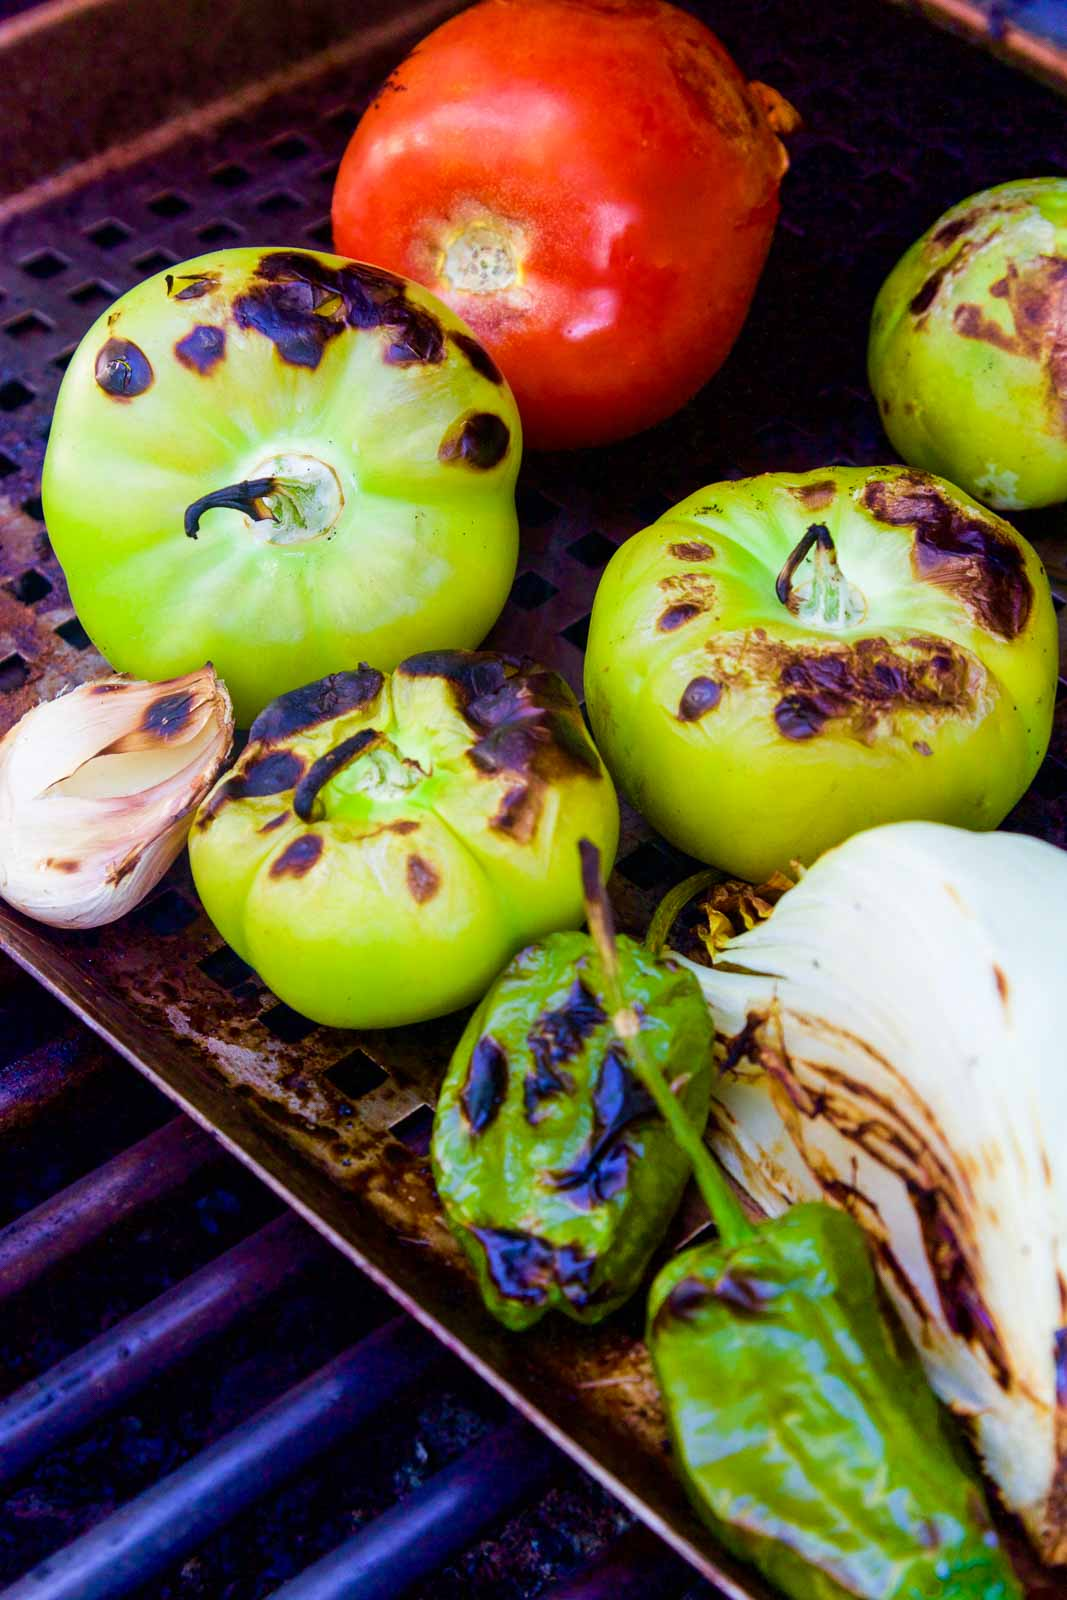 Grilling all the ingredients to make homemade tomatillo salsa on a hot grill including tomatoes, tomatillos, onion, chiles, and garlic.